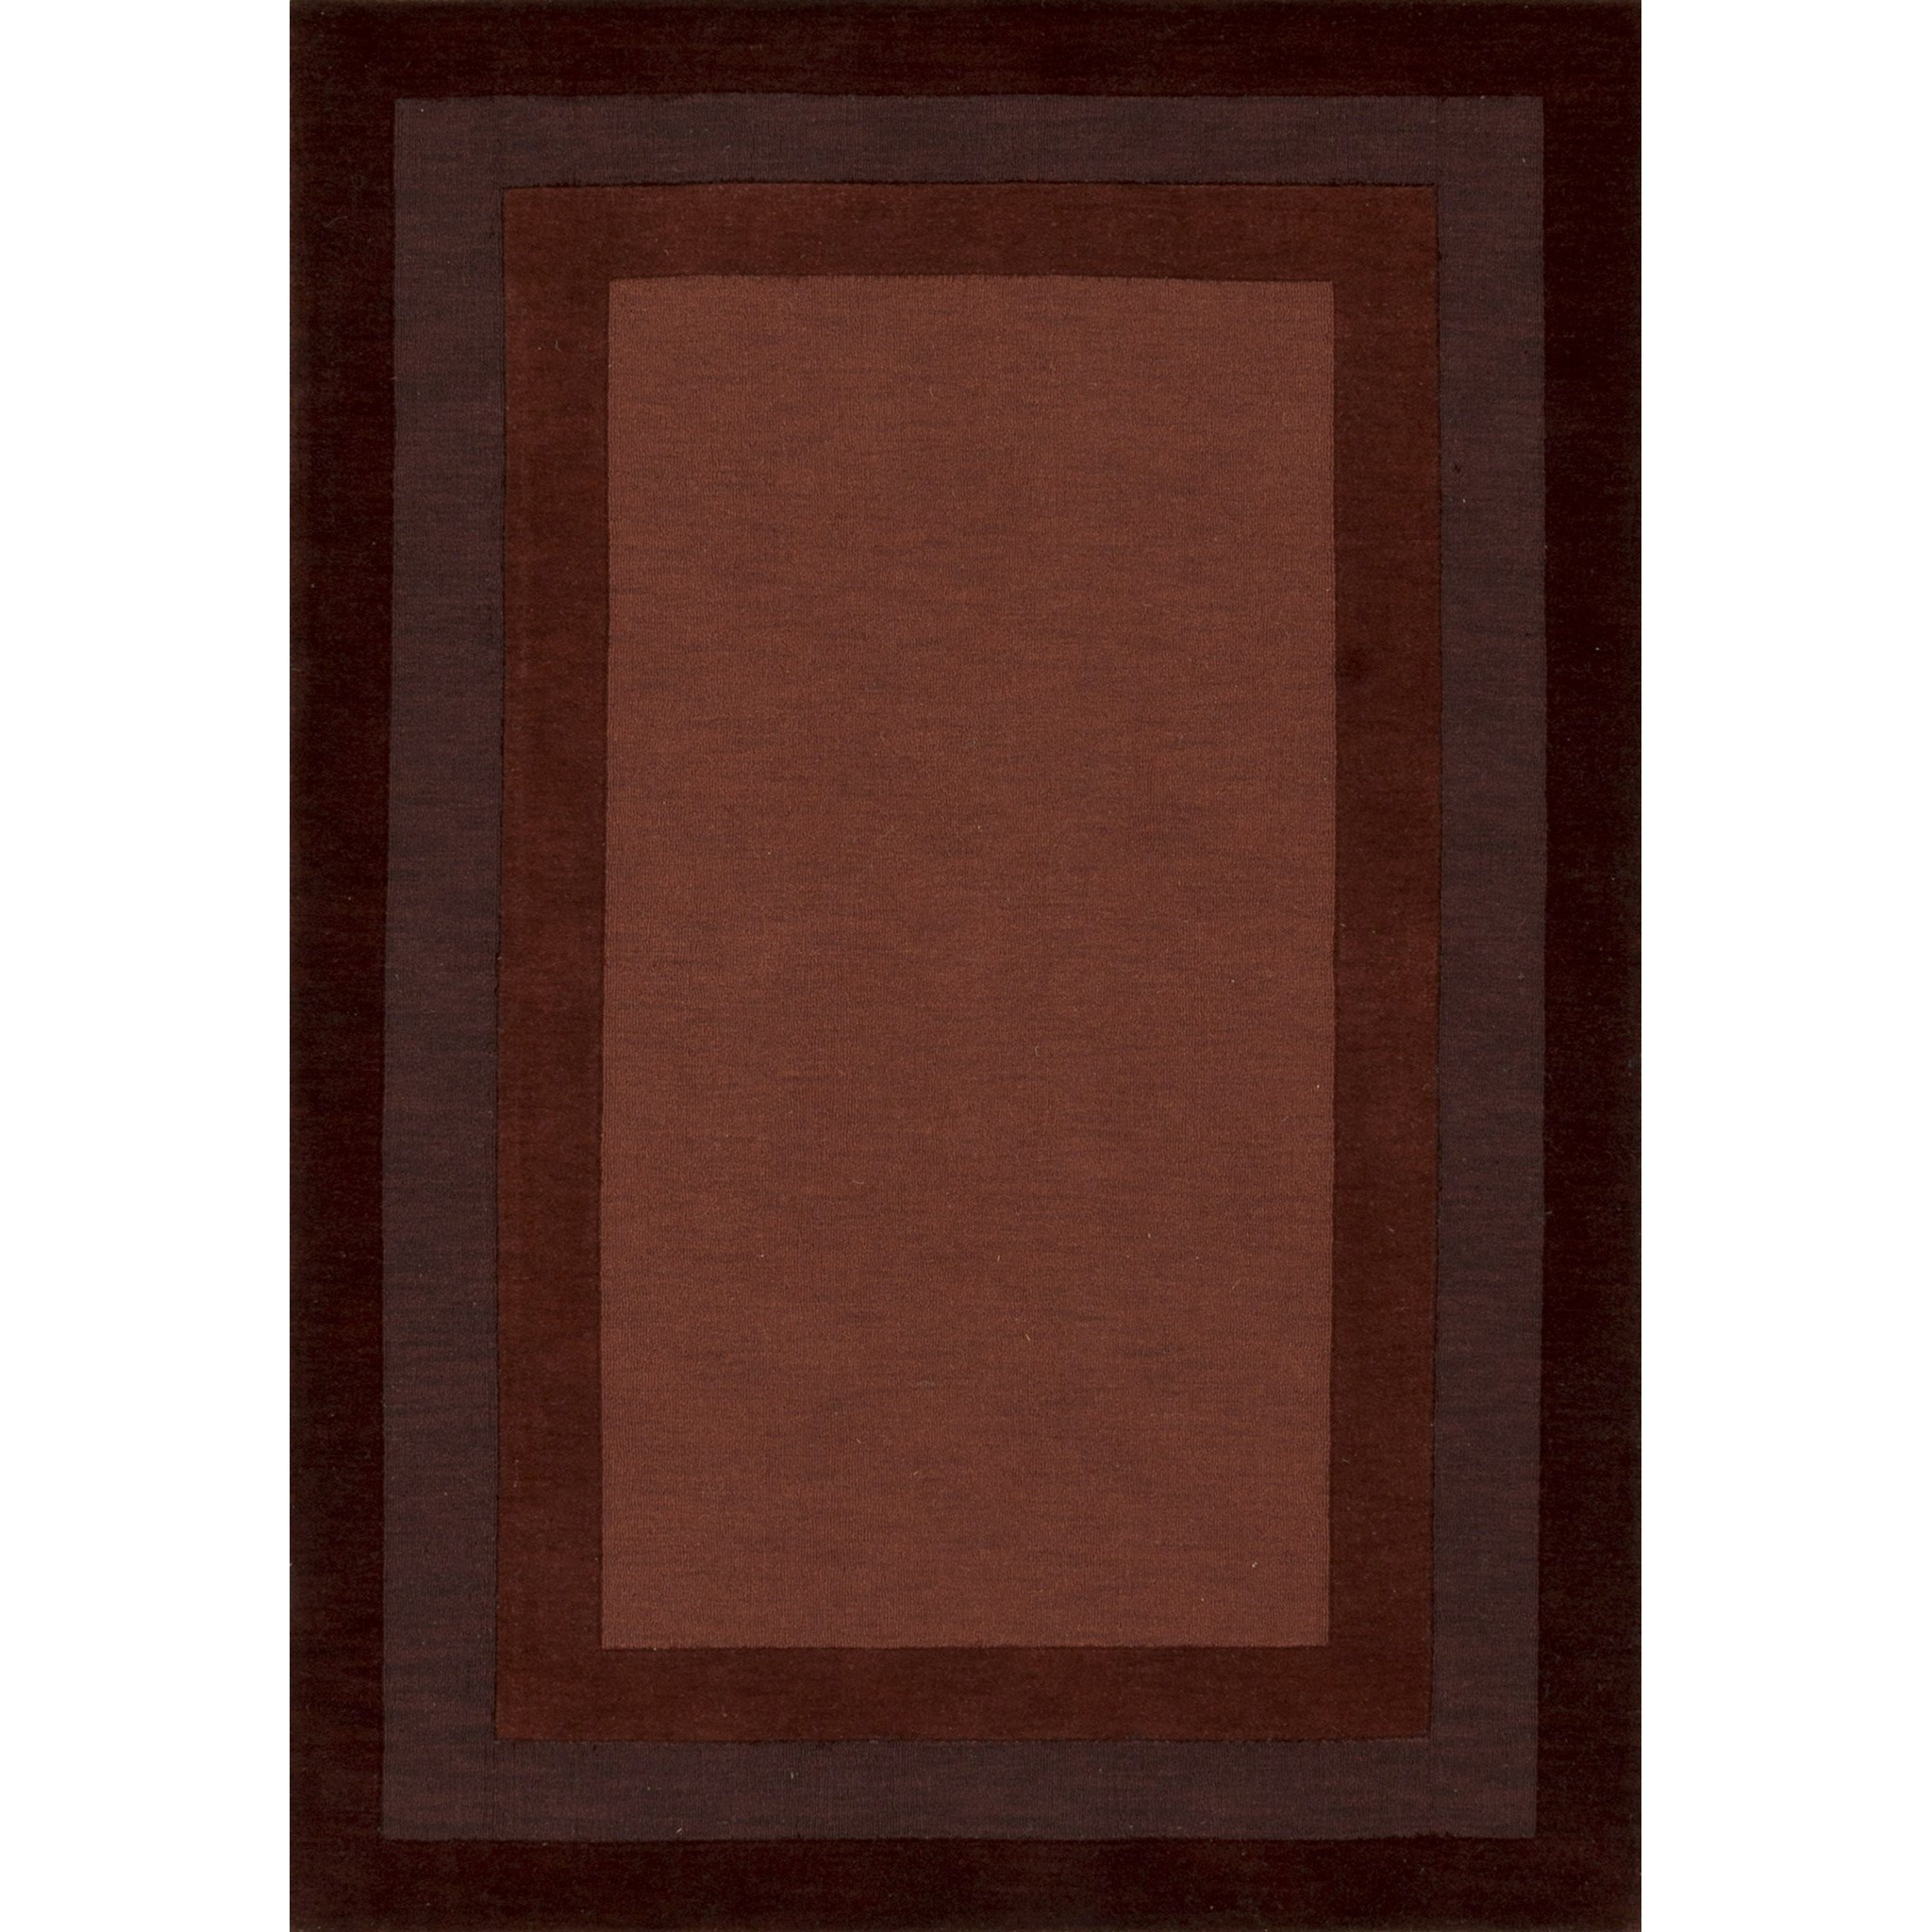 "Hamilton 5'-0"" x 7'-6"" Area Rug by Loloi Rugs at Virginia Furniture Market"